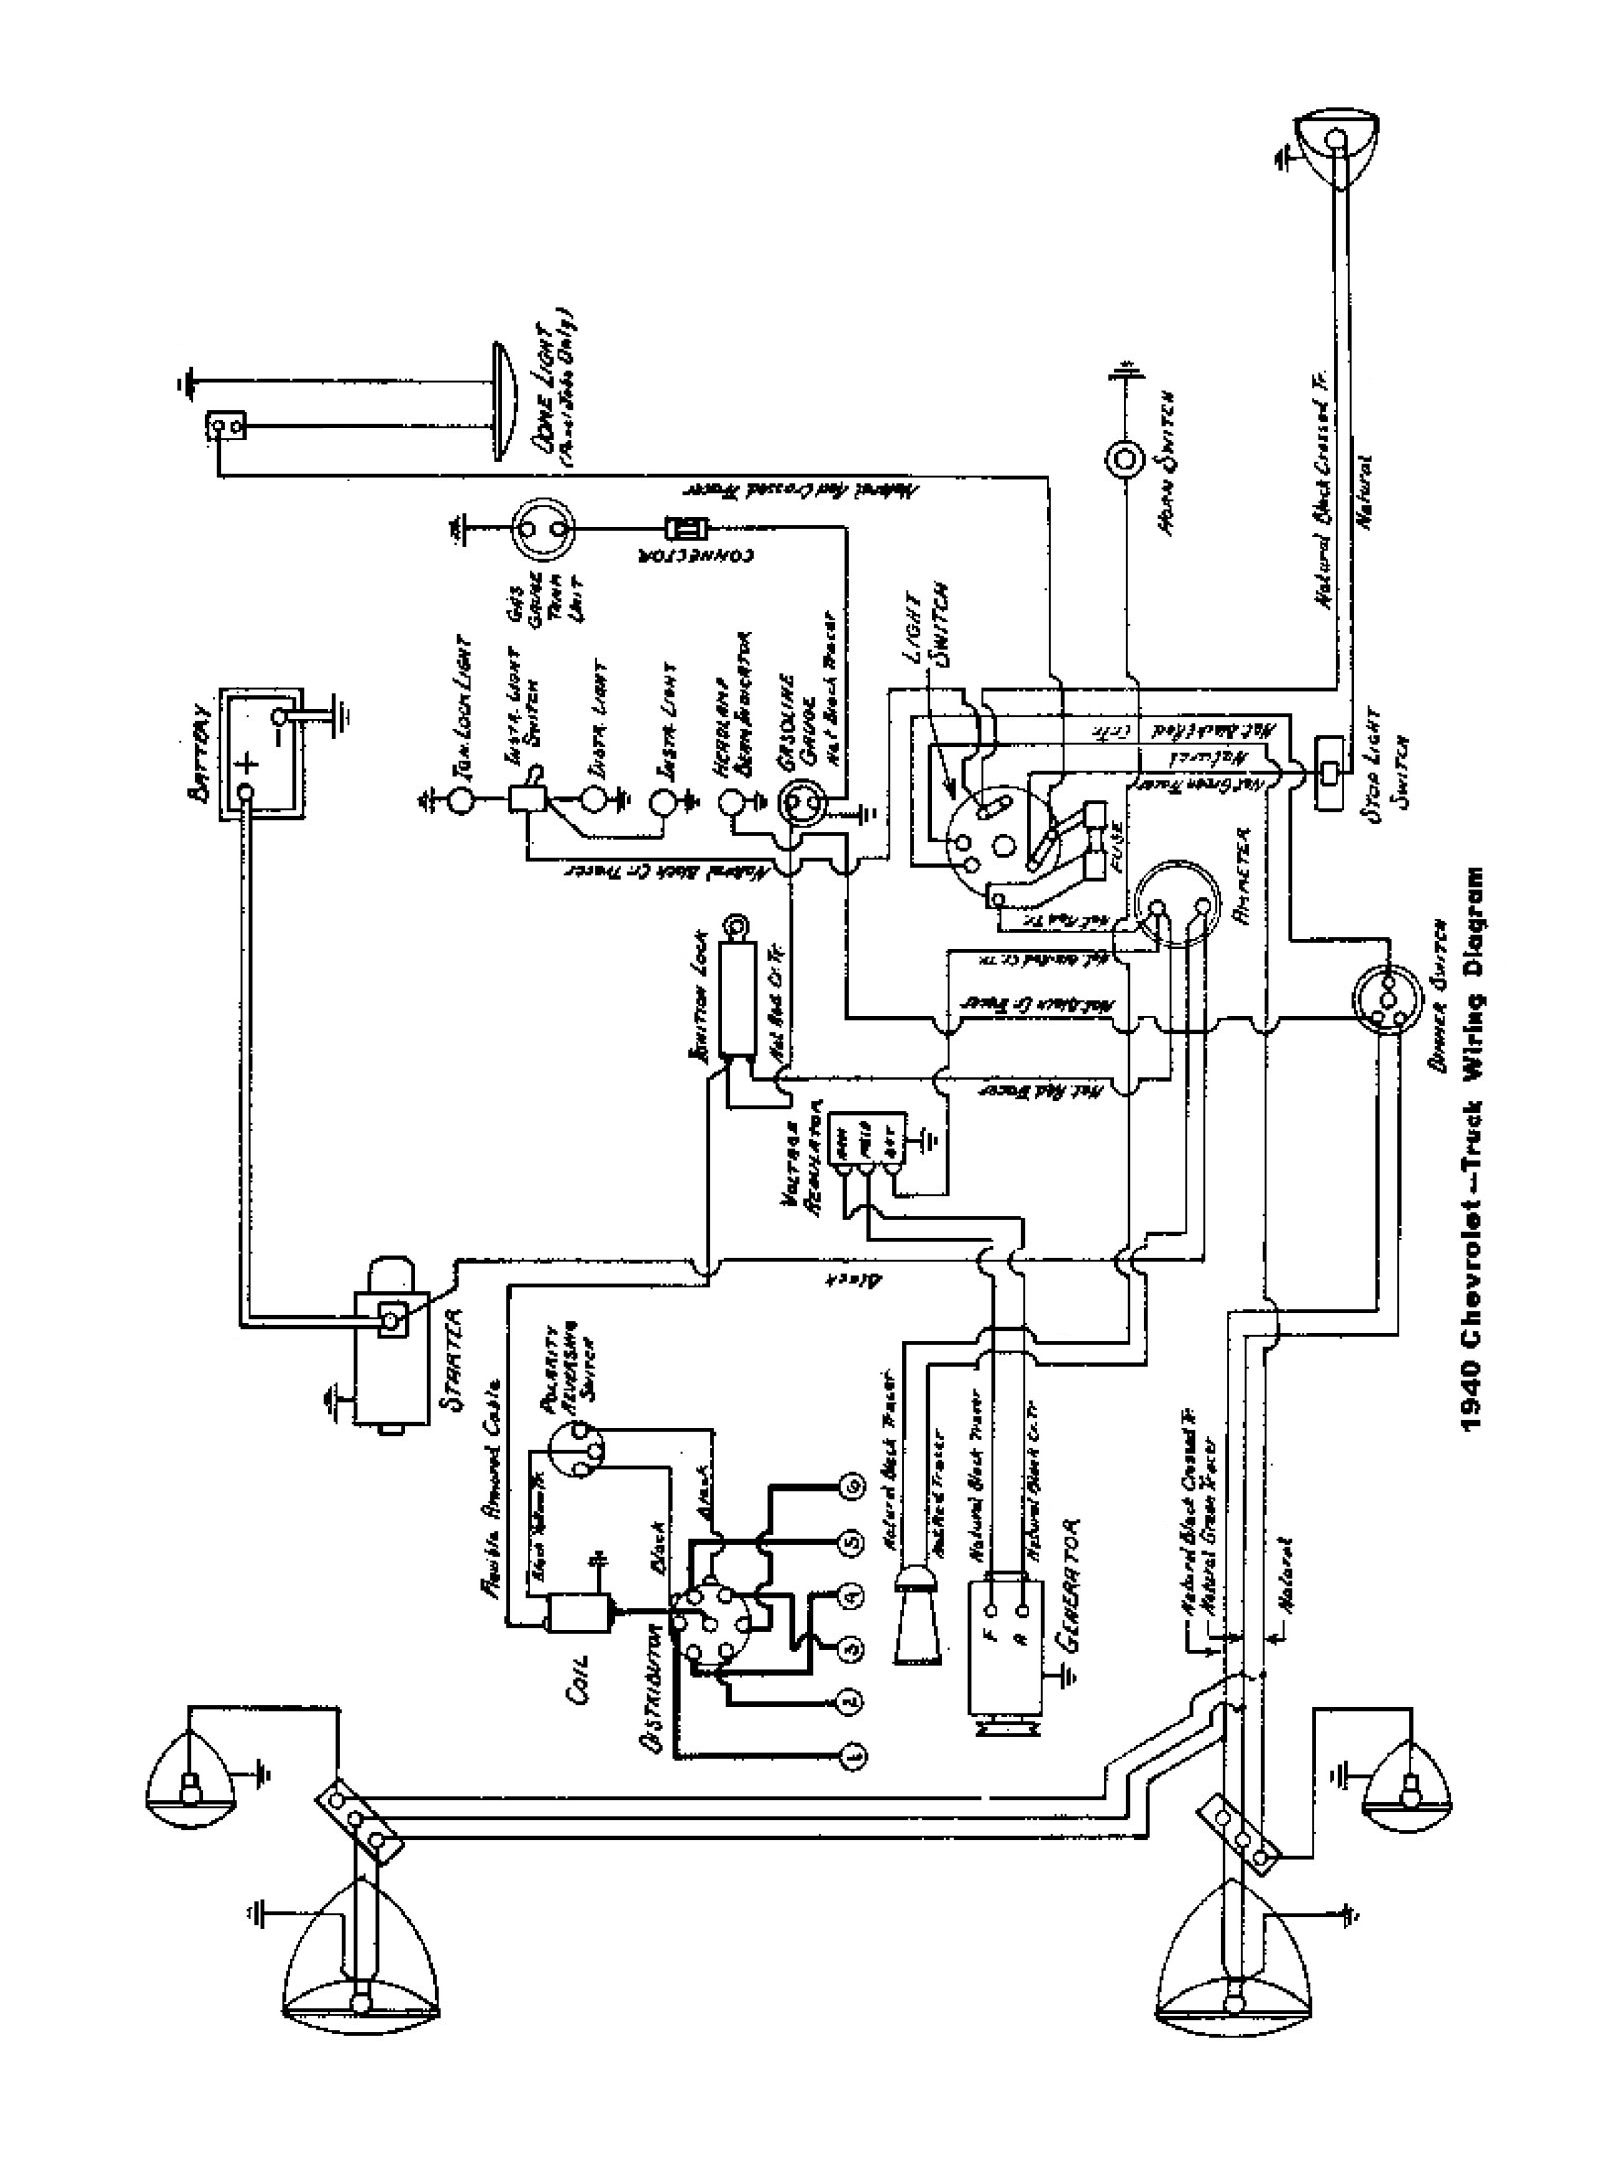 40truck chevrolet truck wiring diagrams chevrolet truck shop manual 1967 gmc pickup wiring diagram at gsmx.co